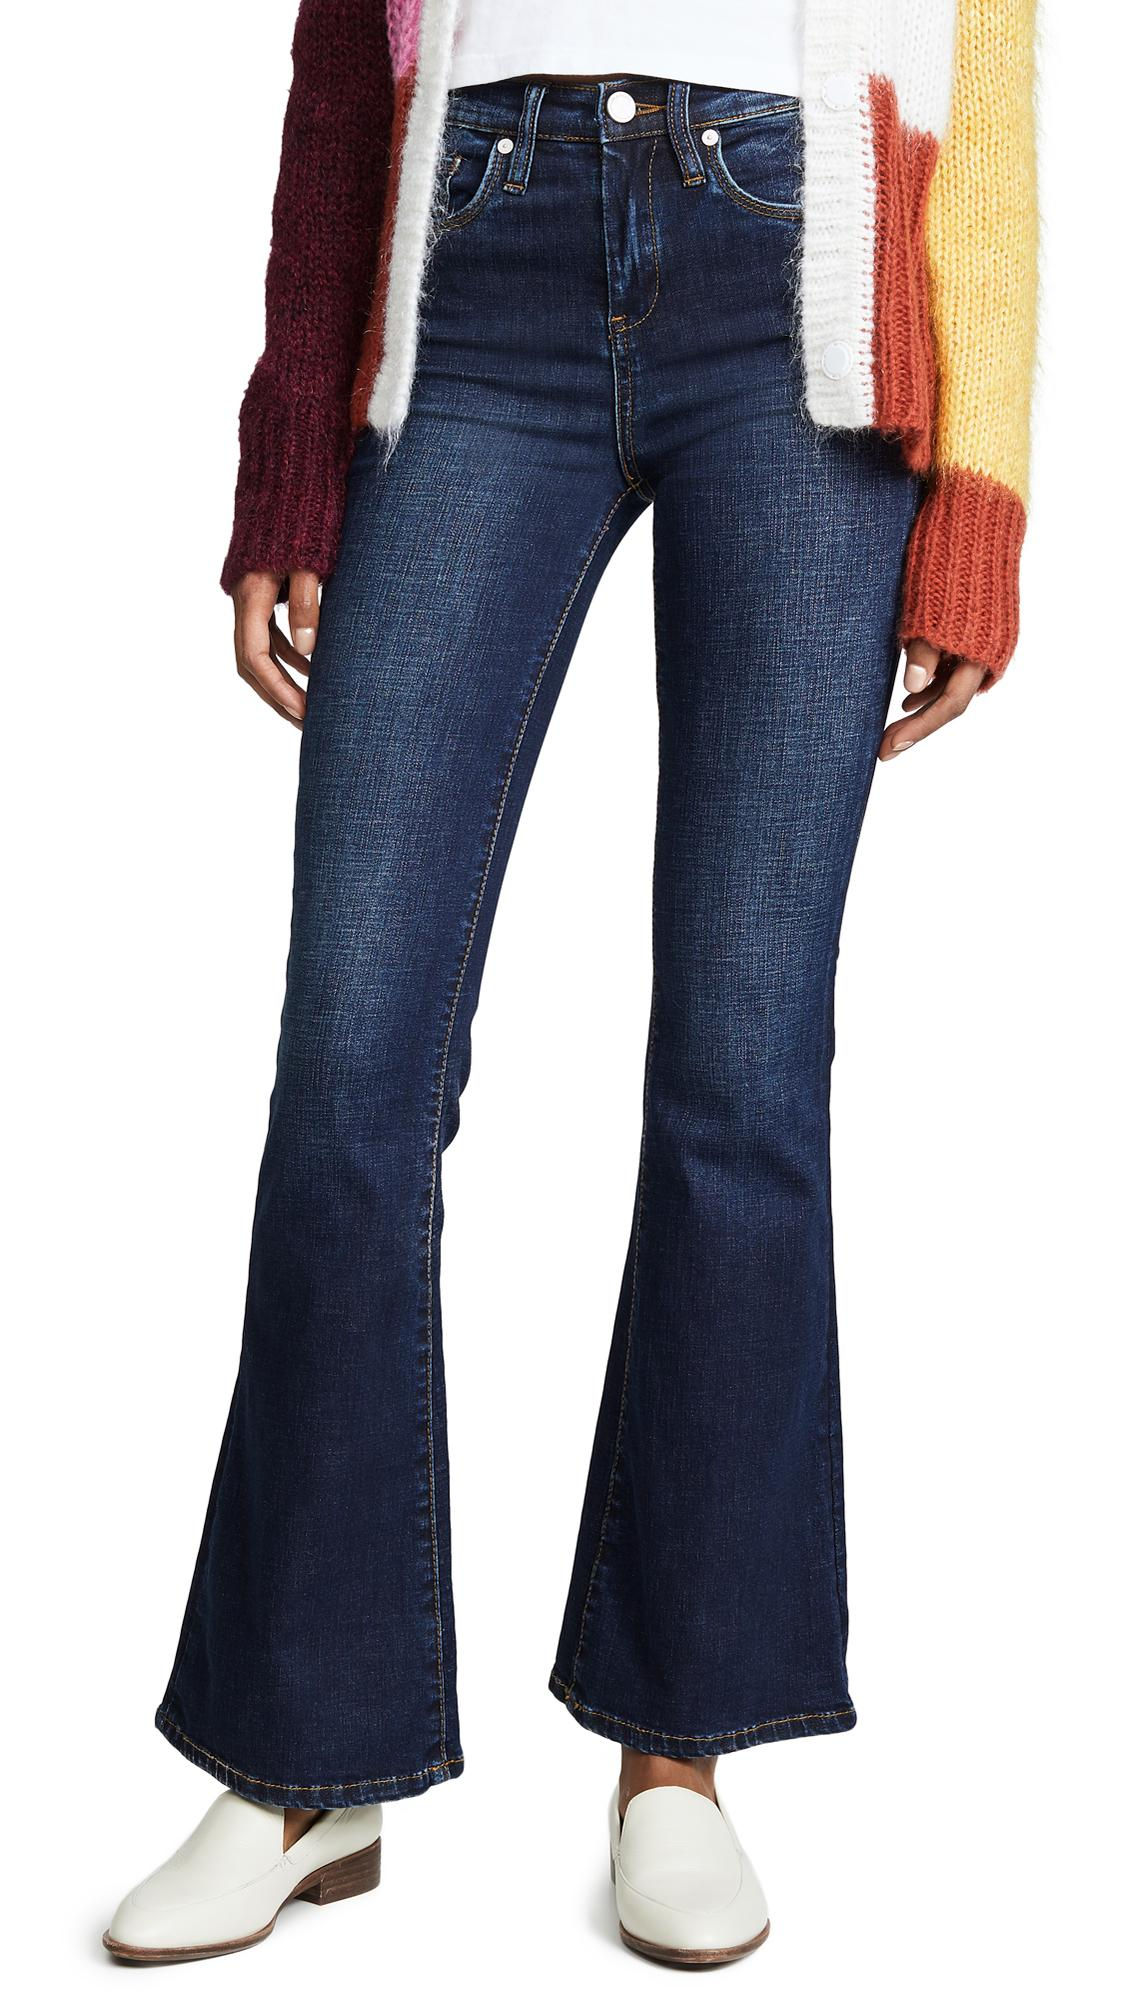 Blank Denim The Waverly High Rise Flare Jeans In The Misfit Wash